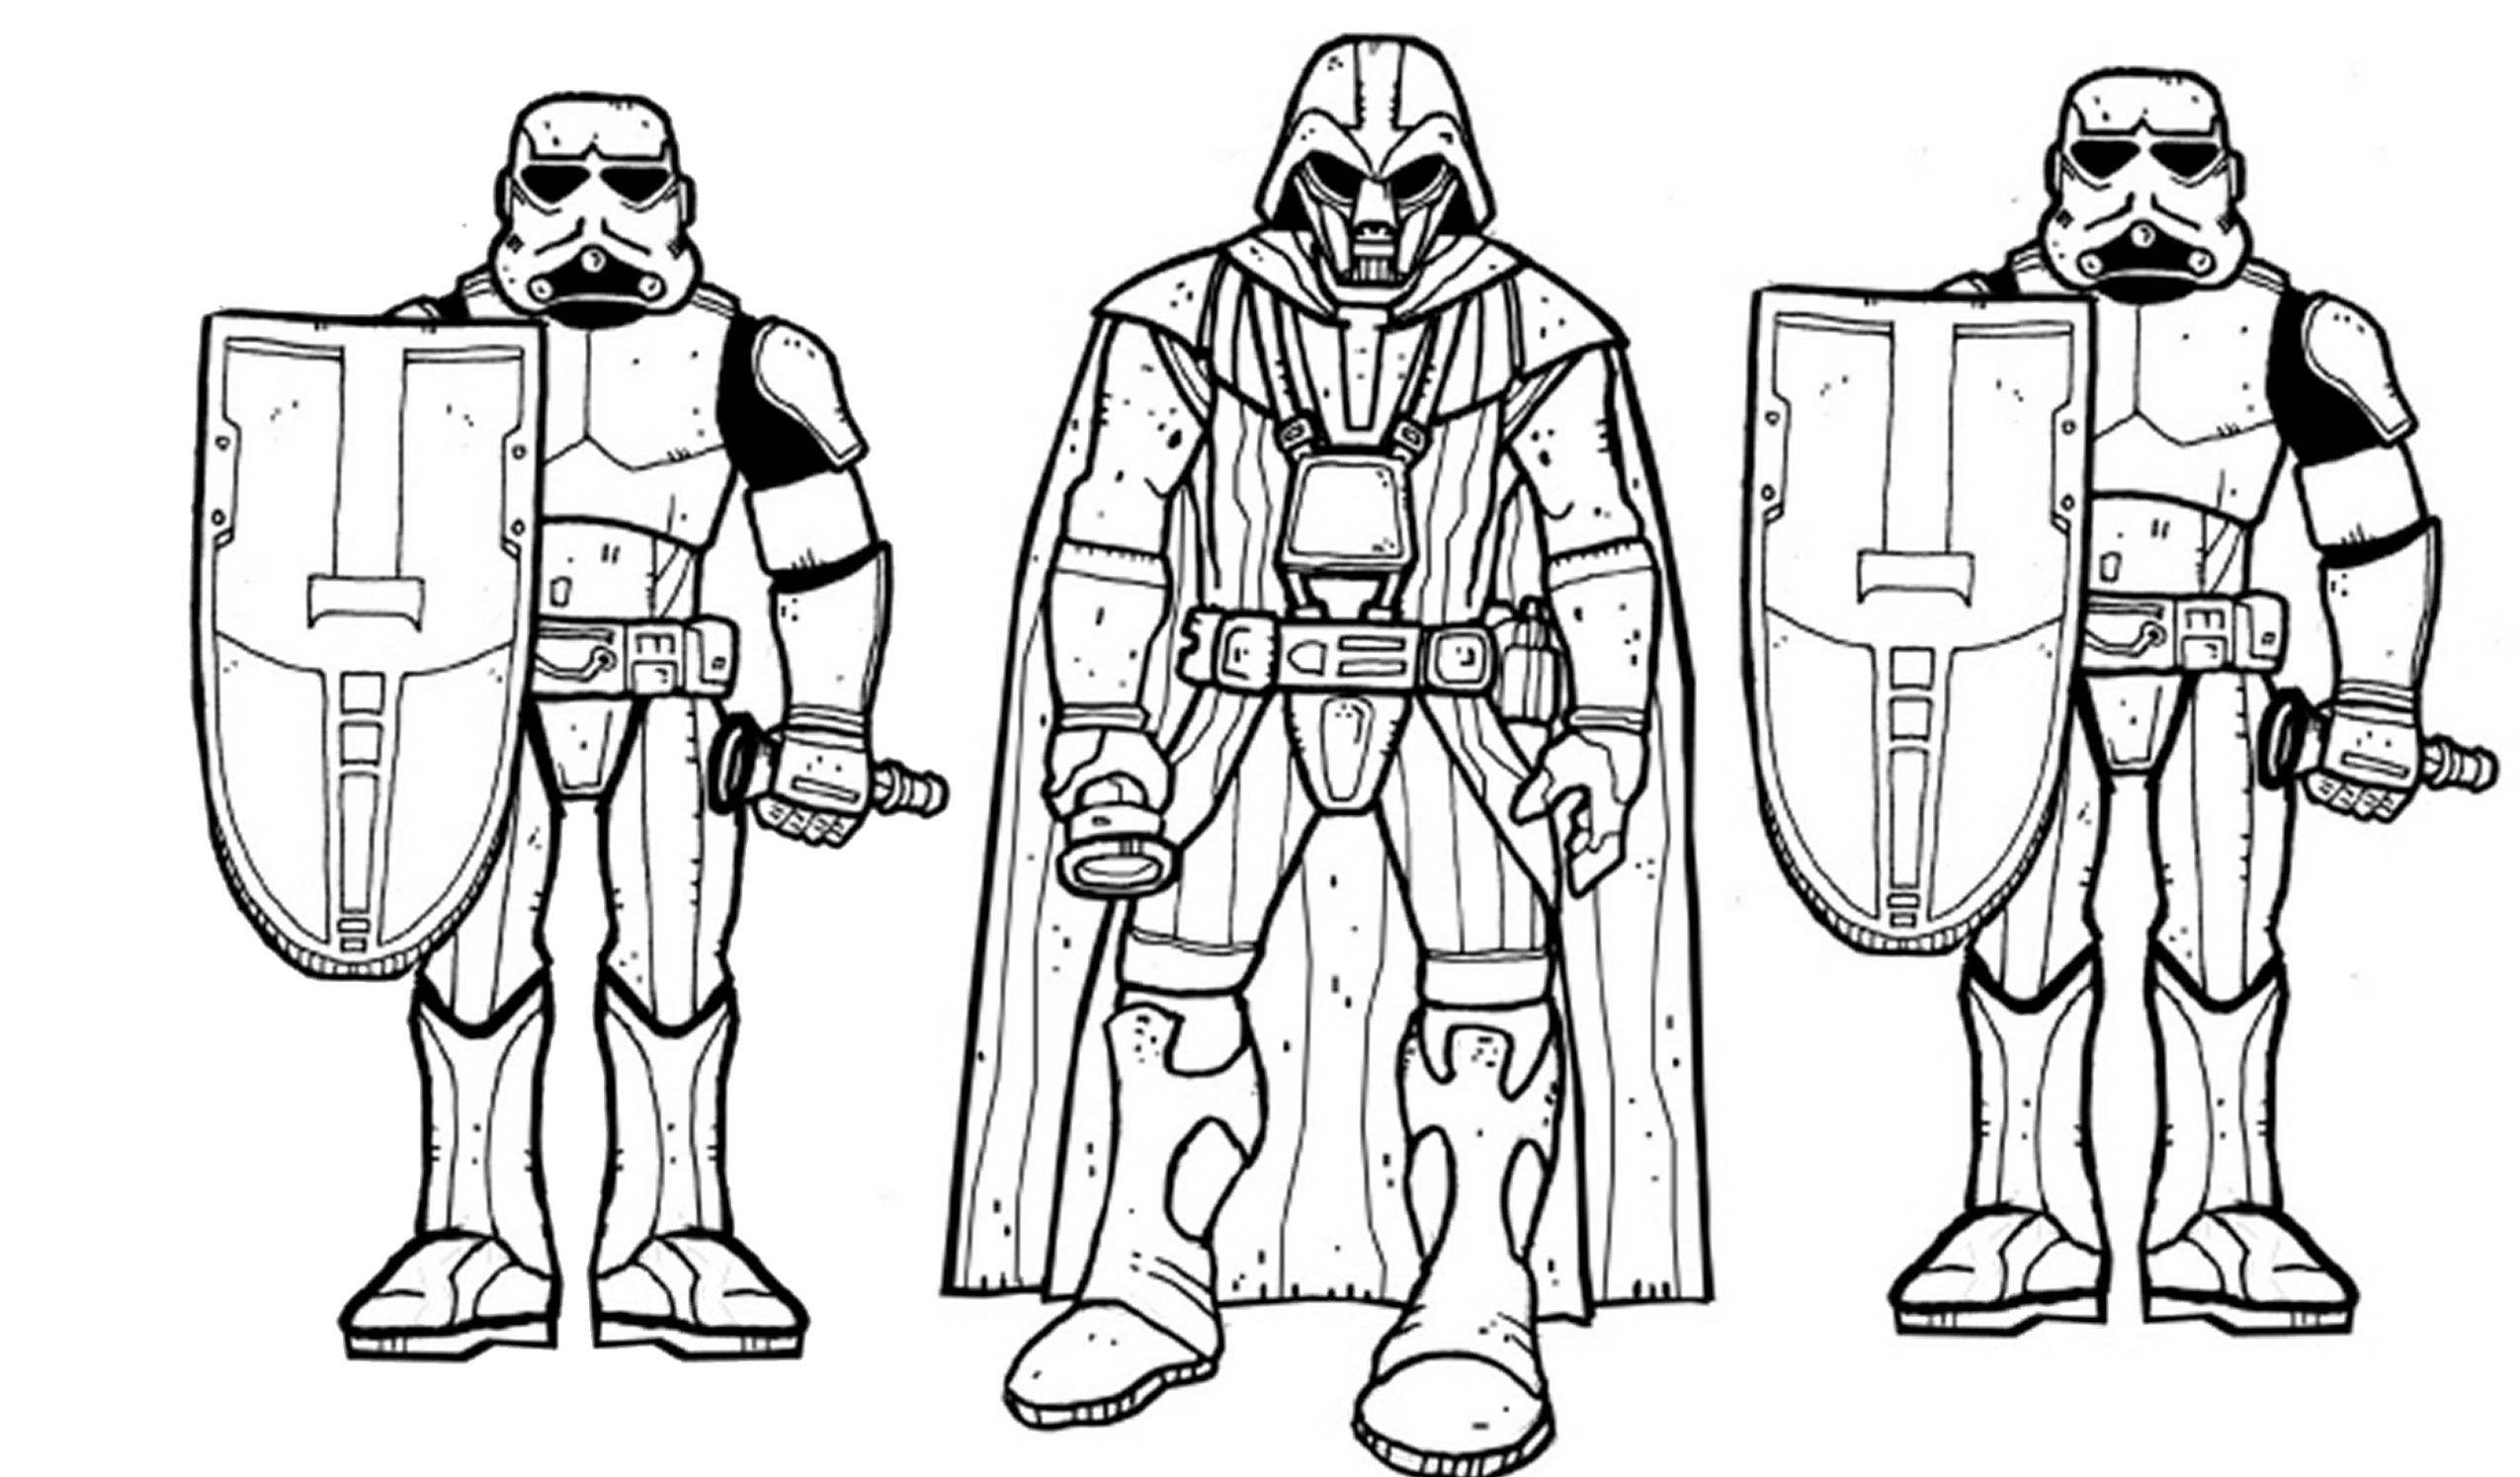 darth vader coloring darth vader coloring pages to download and print for free darth vader coloring